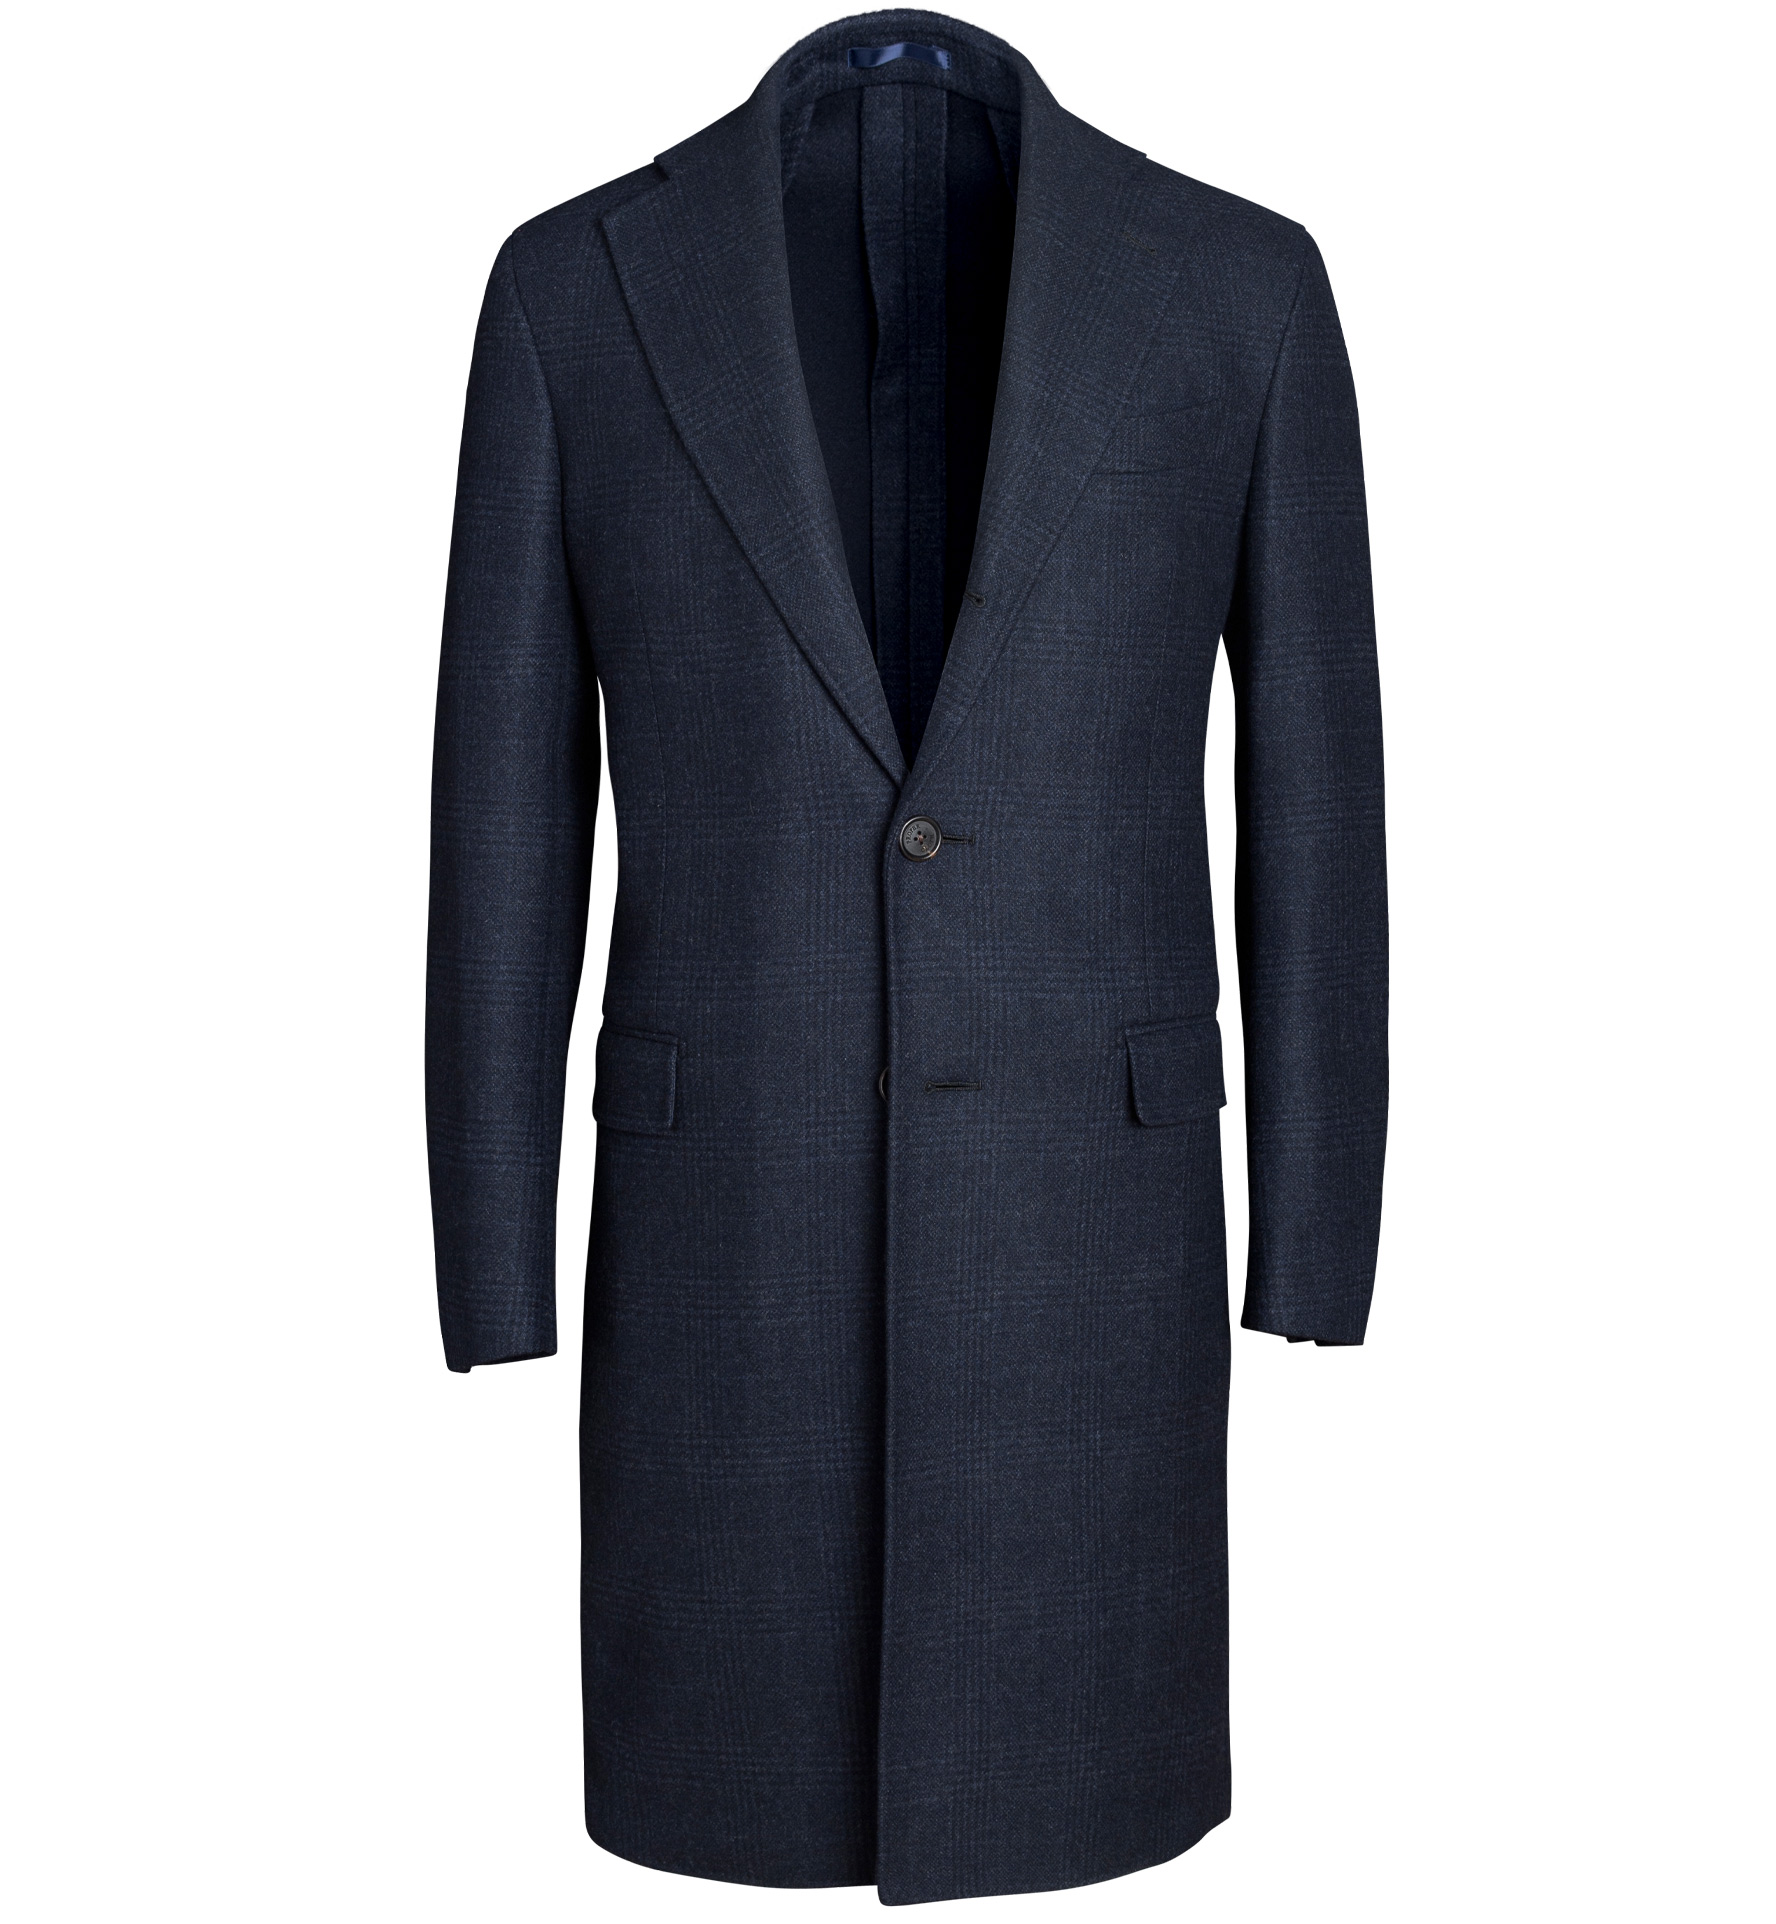 Zoom Image of Bowery Navy Plaid Wool Unstructured Coat